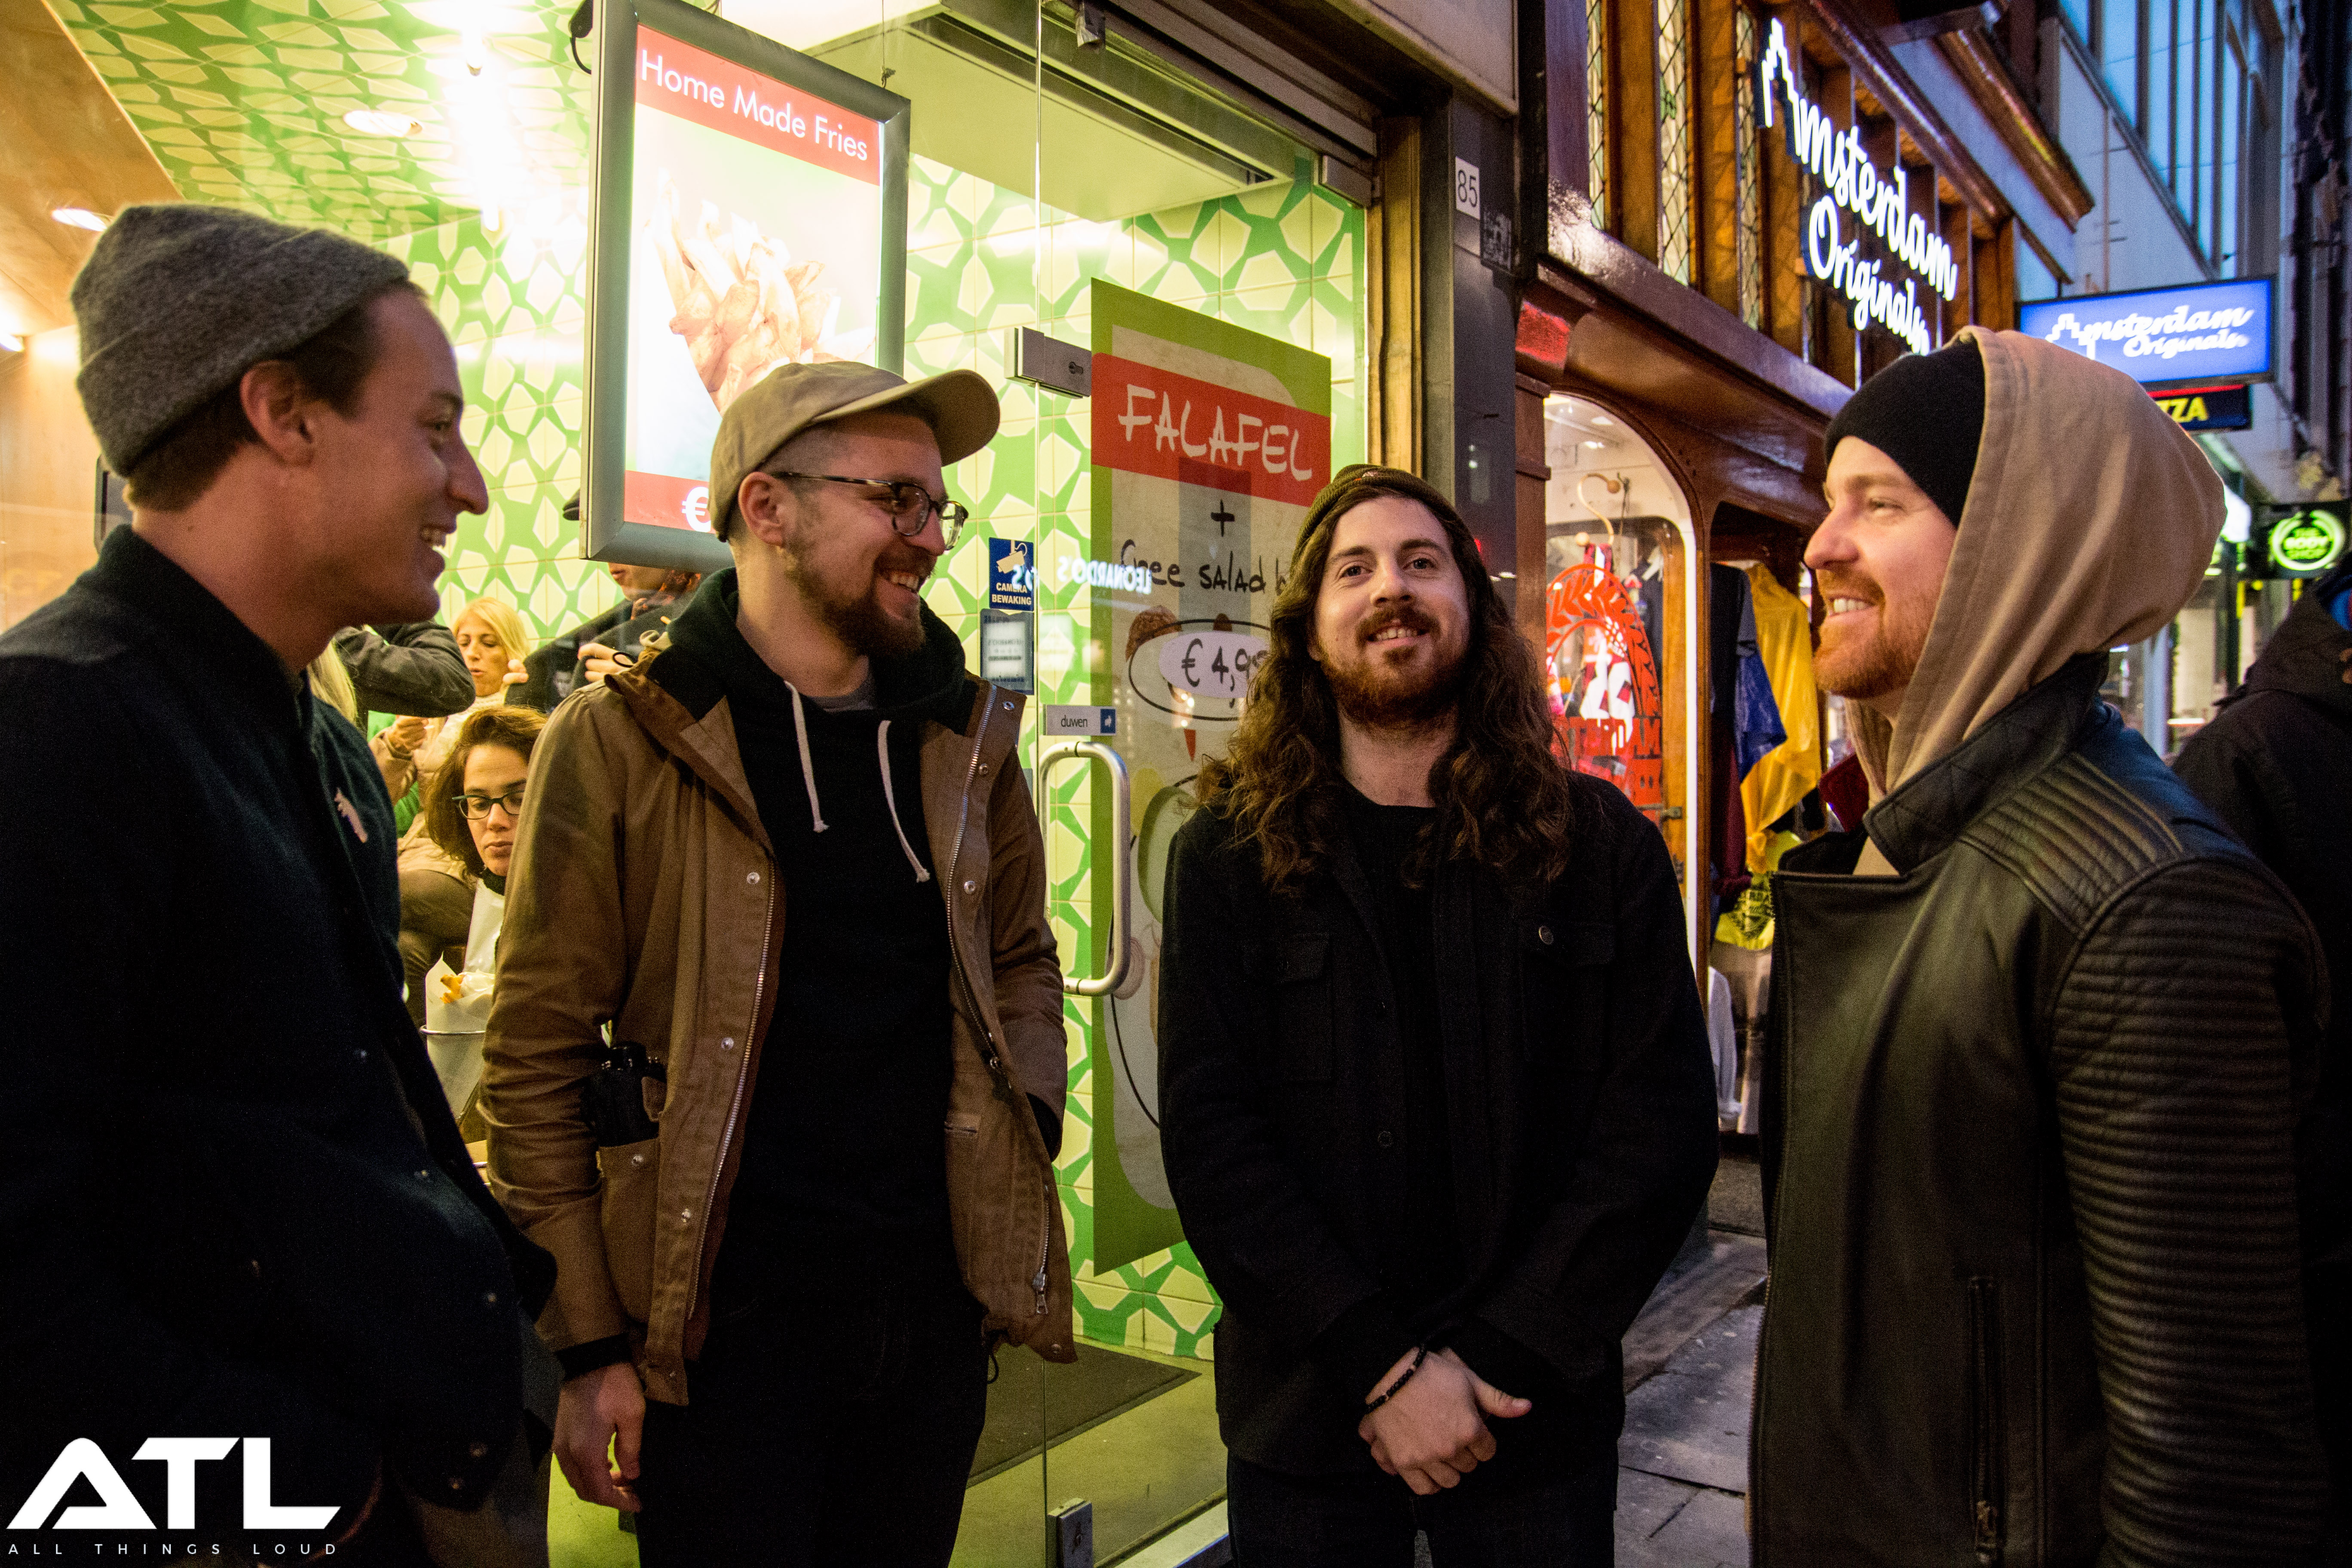 17:07. Members of Silverstein, The Devil Wears Prada and Memphis May Fire hang out downtown.